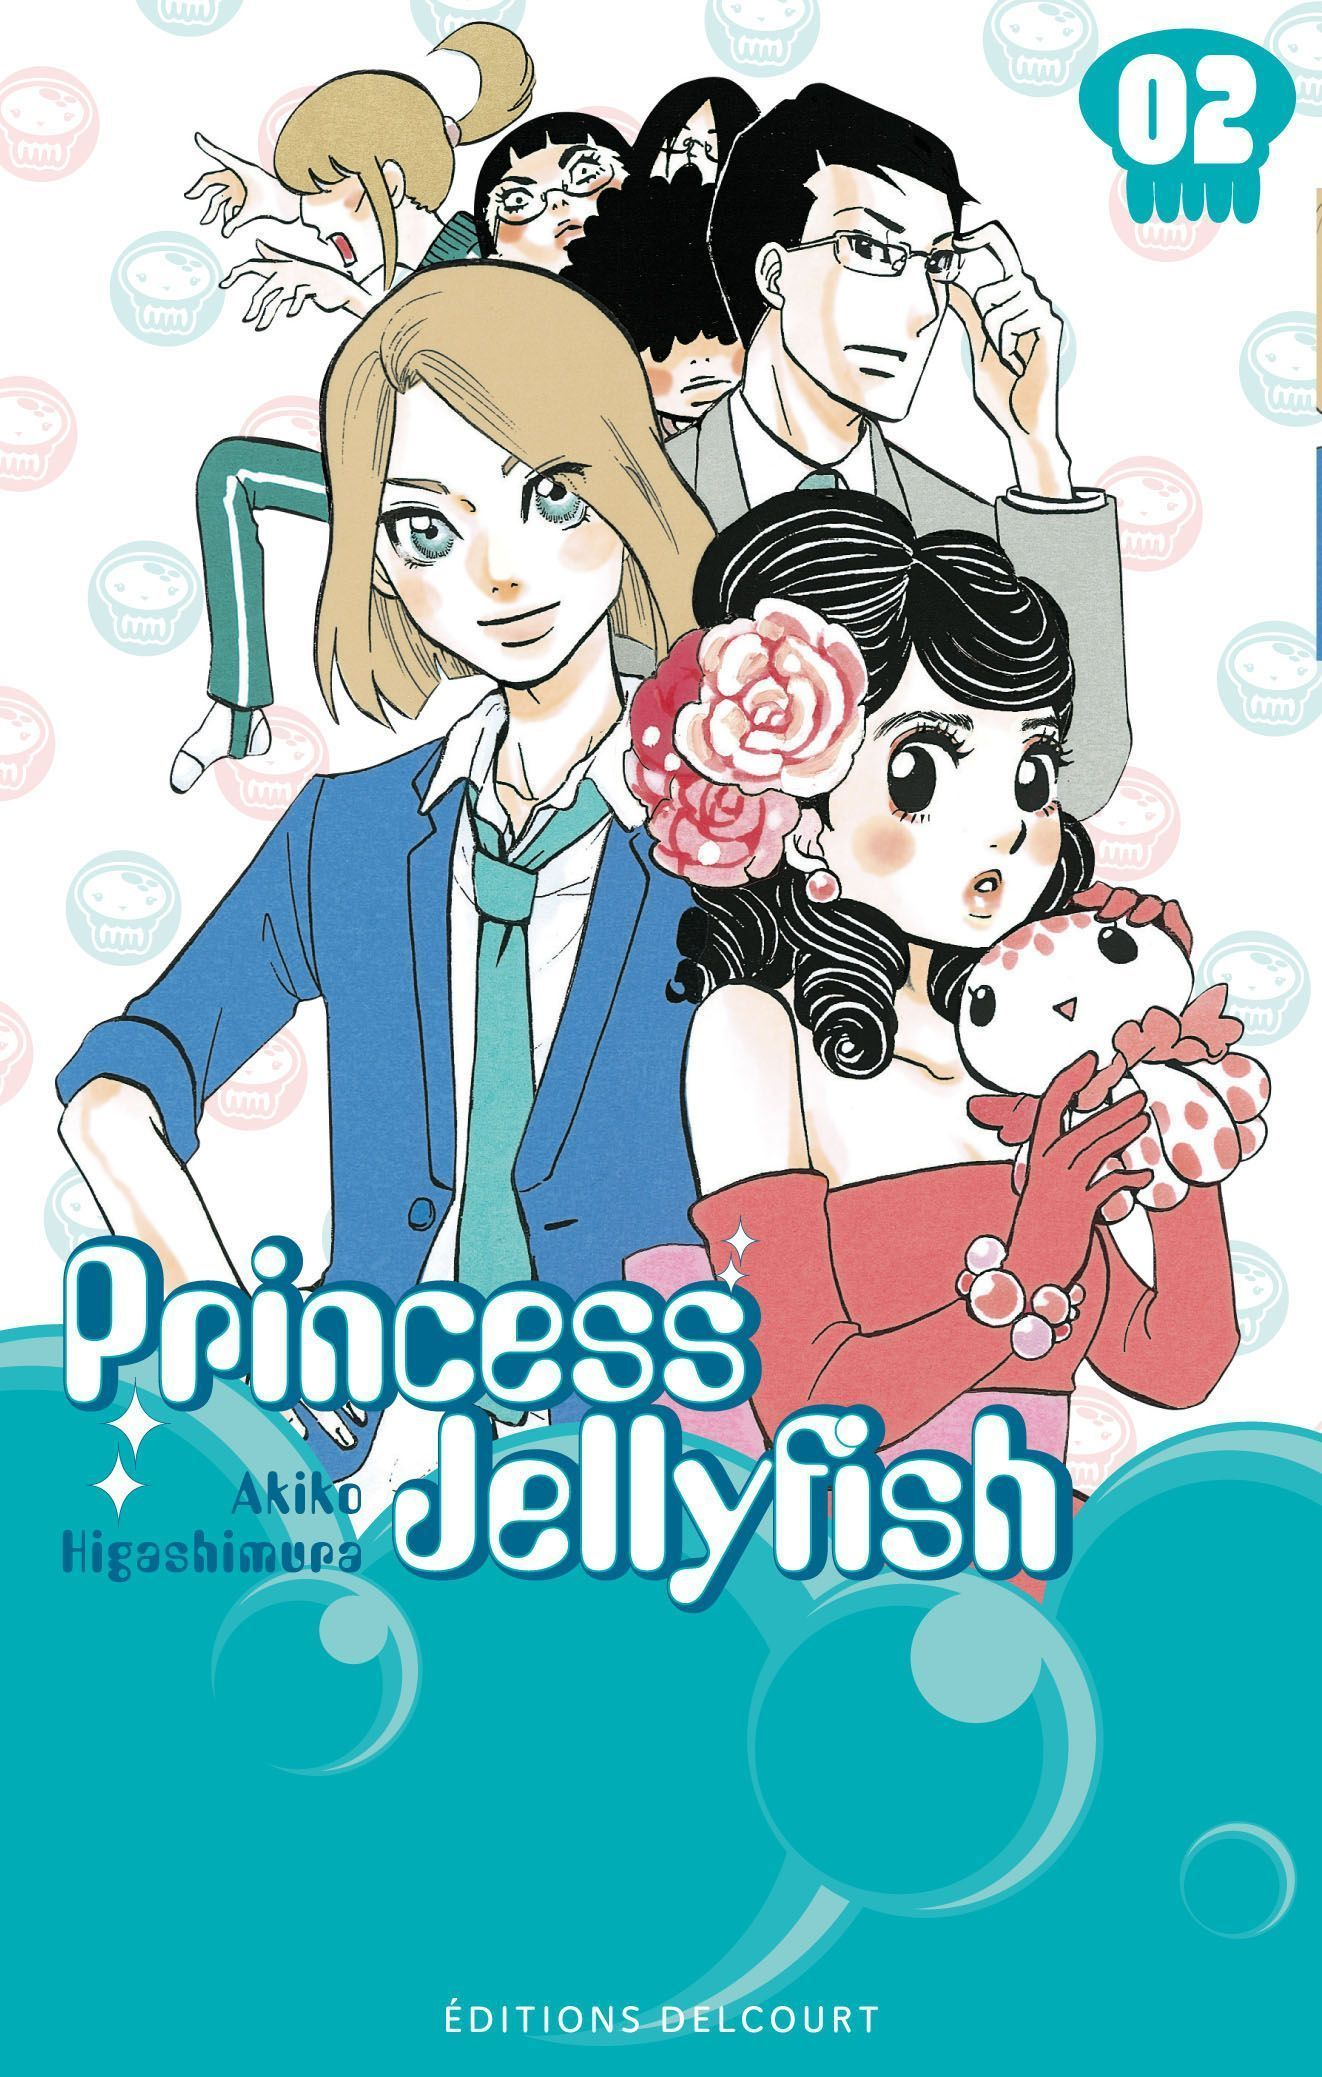 Aesthetic Anime Aquarell Edition Jellyfish Jellyfish Aesthetic Jellyfish Anime Jellyfish Aquarell Princess Jellyfish Jellyfish Jellyfish Illustration